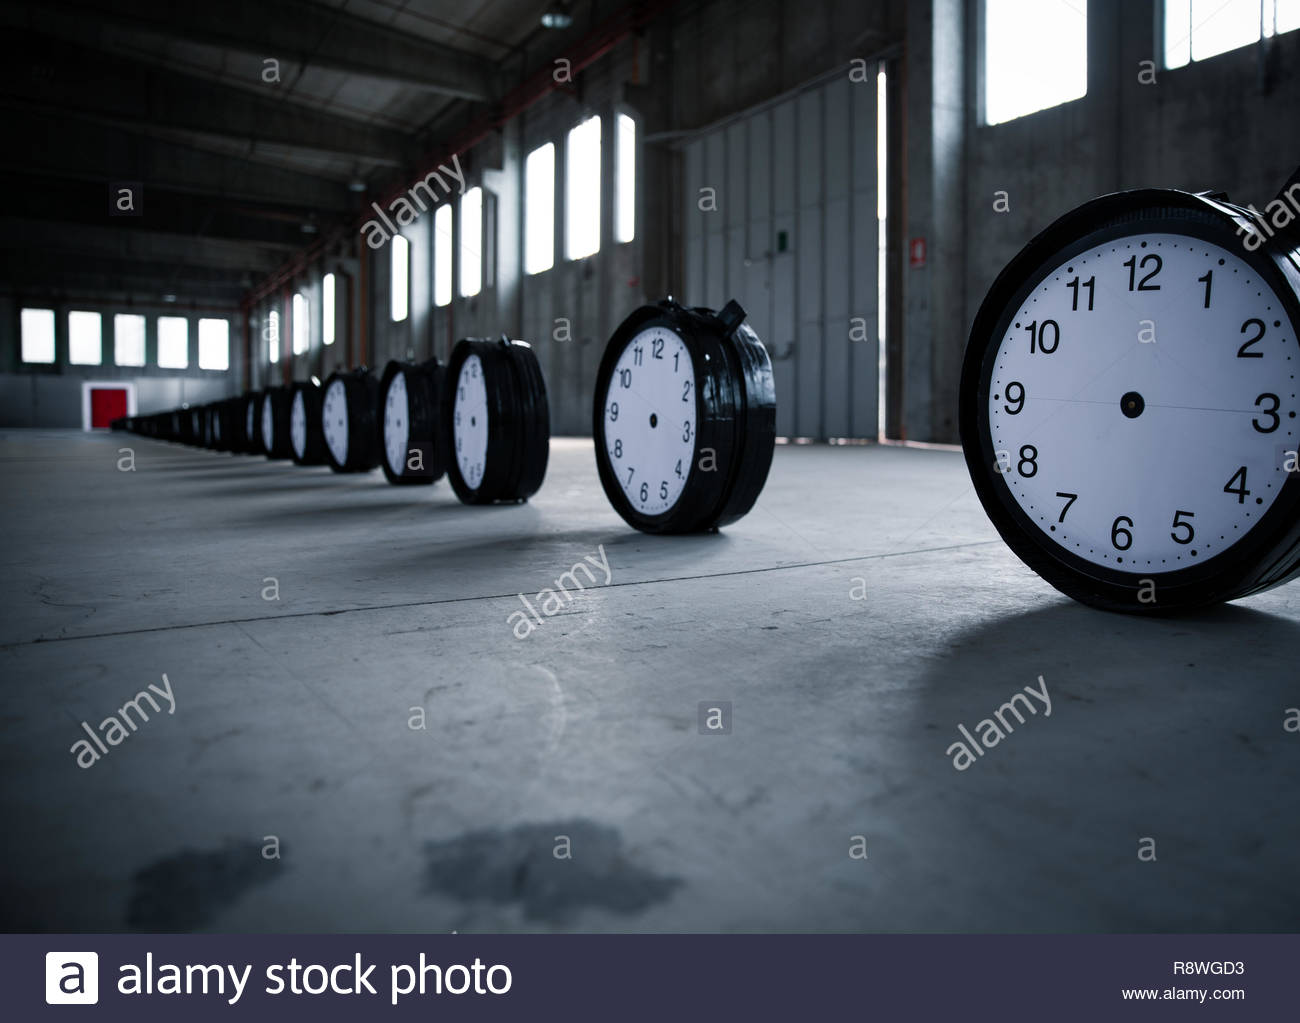 Fifty black clocks are placed in a row pointing to a double red door in an empty factory. - Stock Image